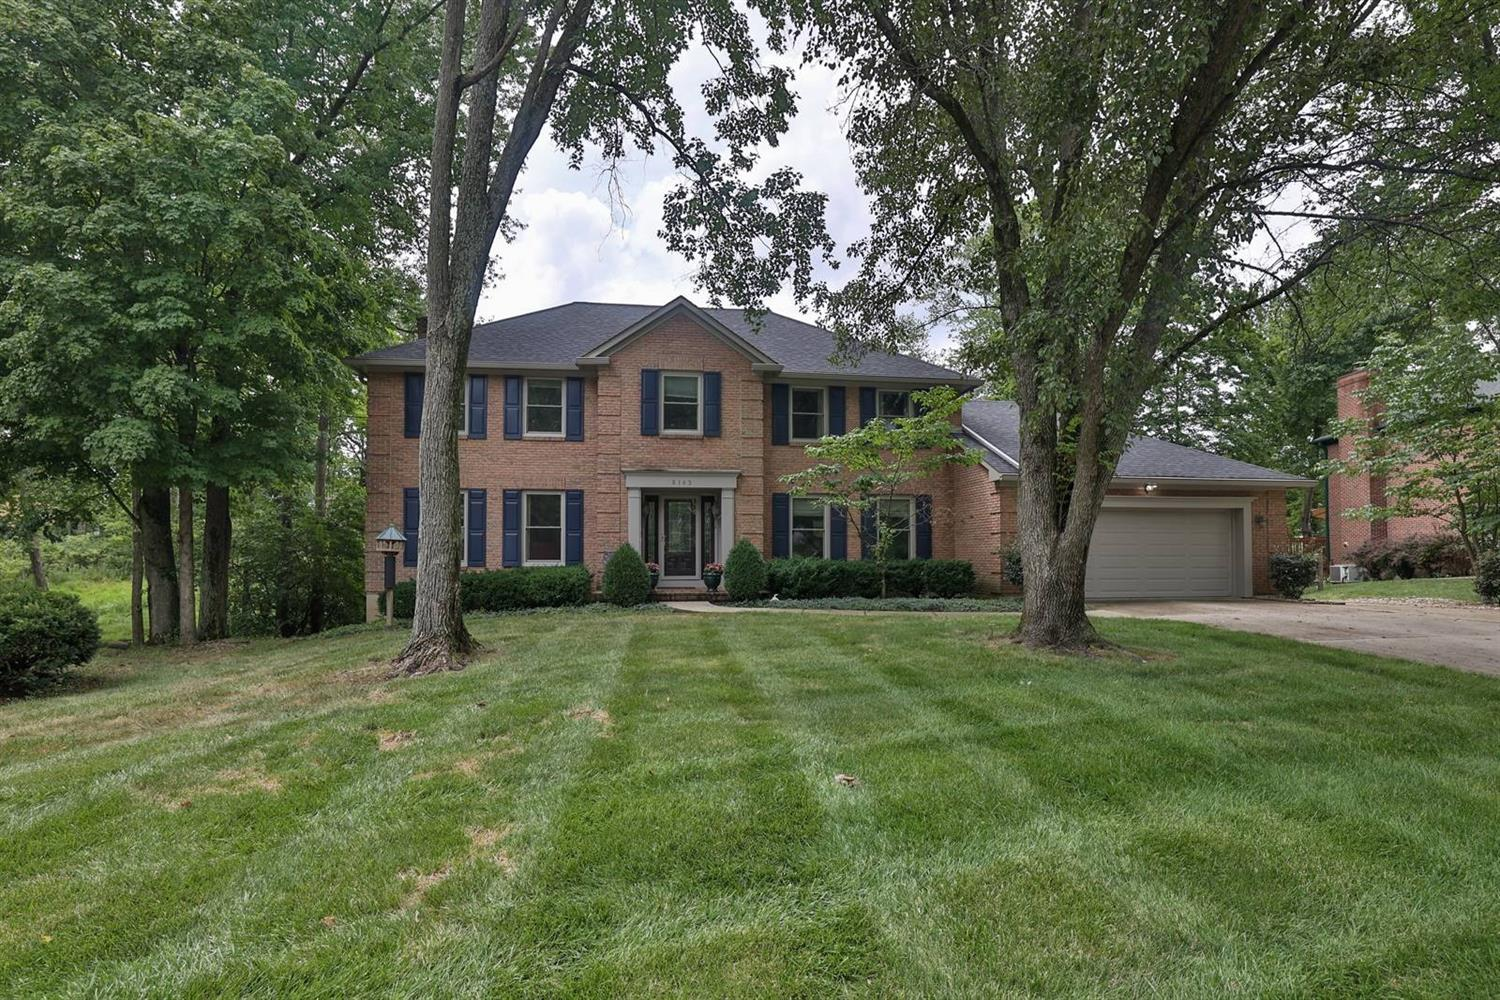 8143 Lyndhurst Court, Sycamore Twp, Ohio 45249, 4 Bedrooms Bedrooms, 10 Rooms Rooms,3 BathroomsBathrooms,Single Family Residence,For Sale,Lyndhurst,1712494